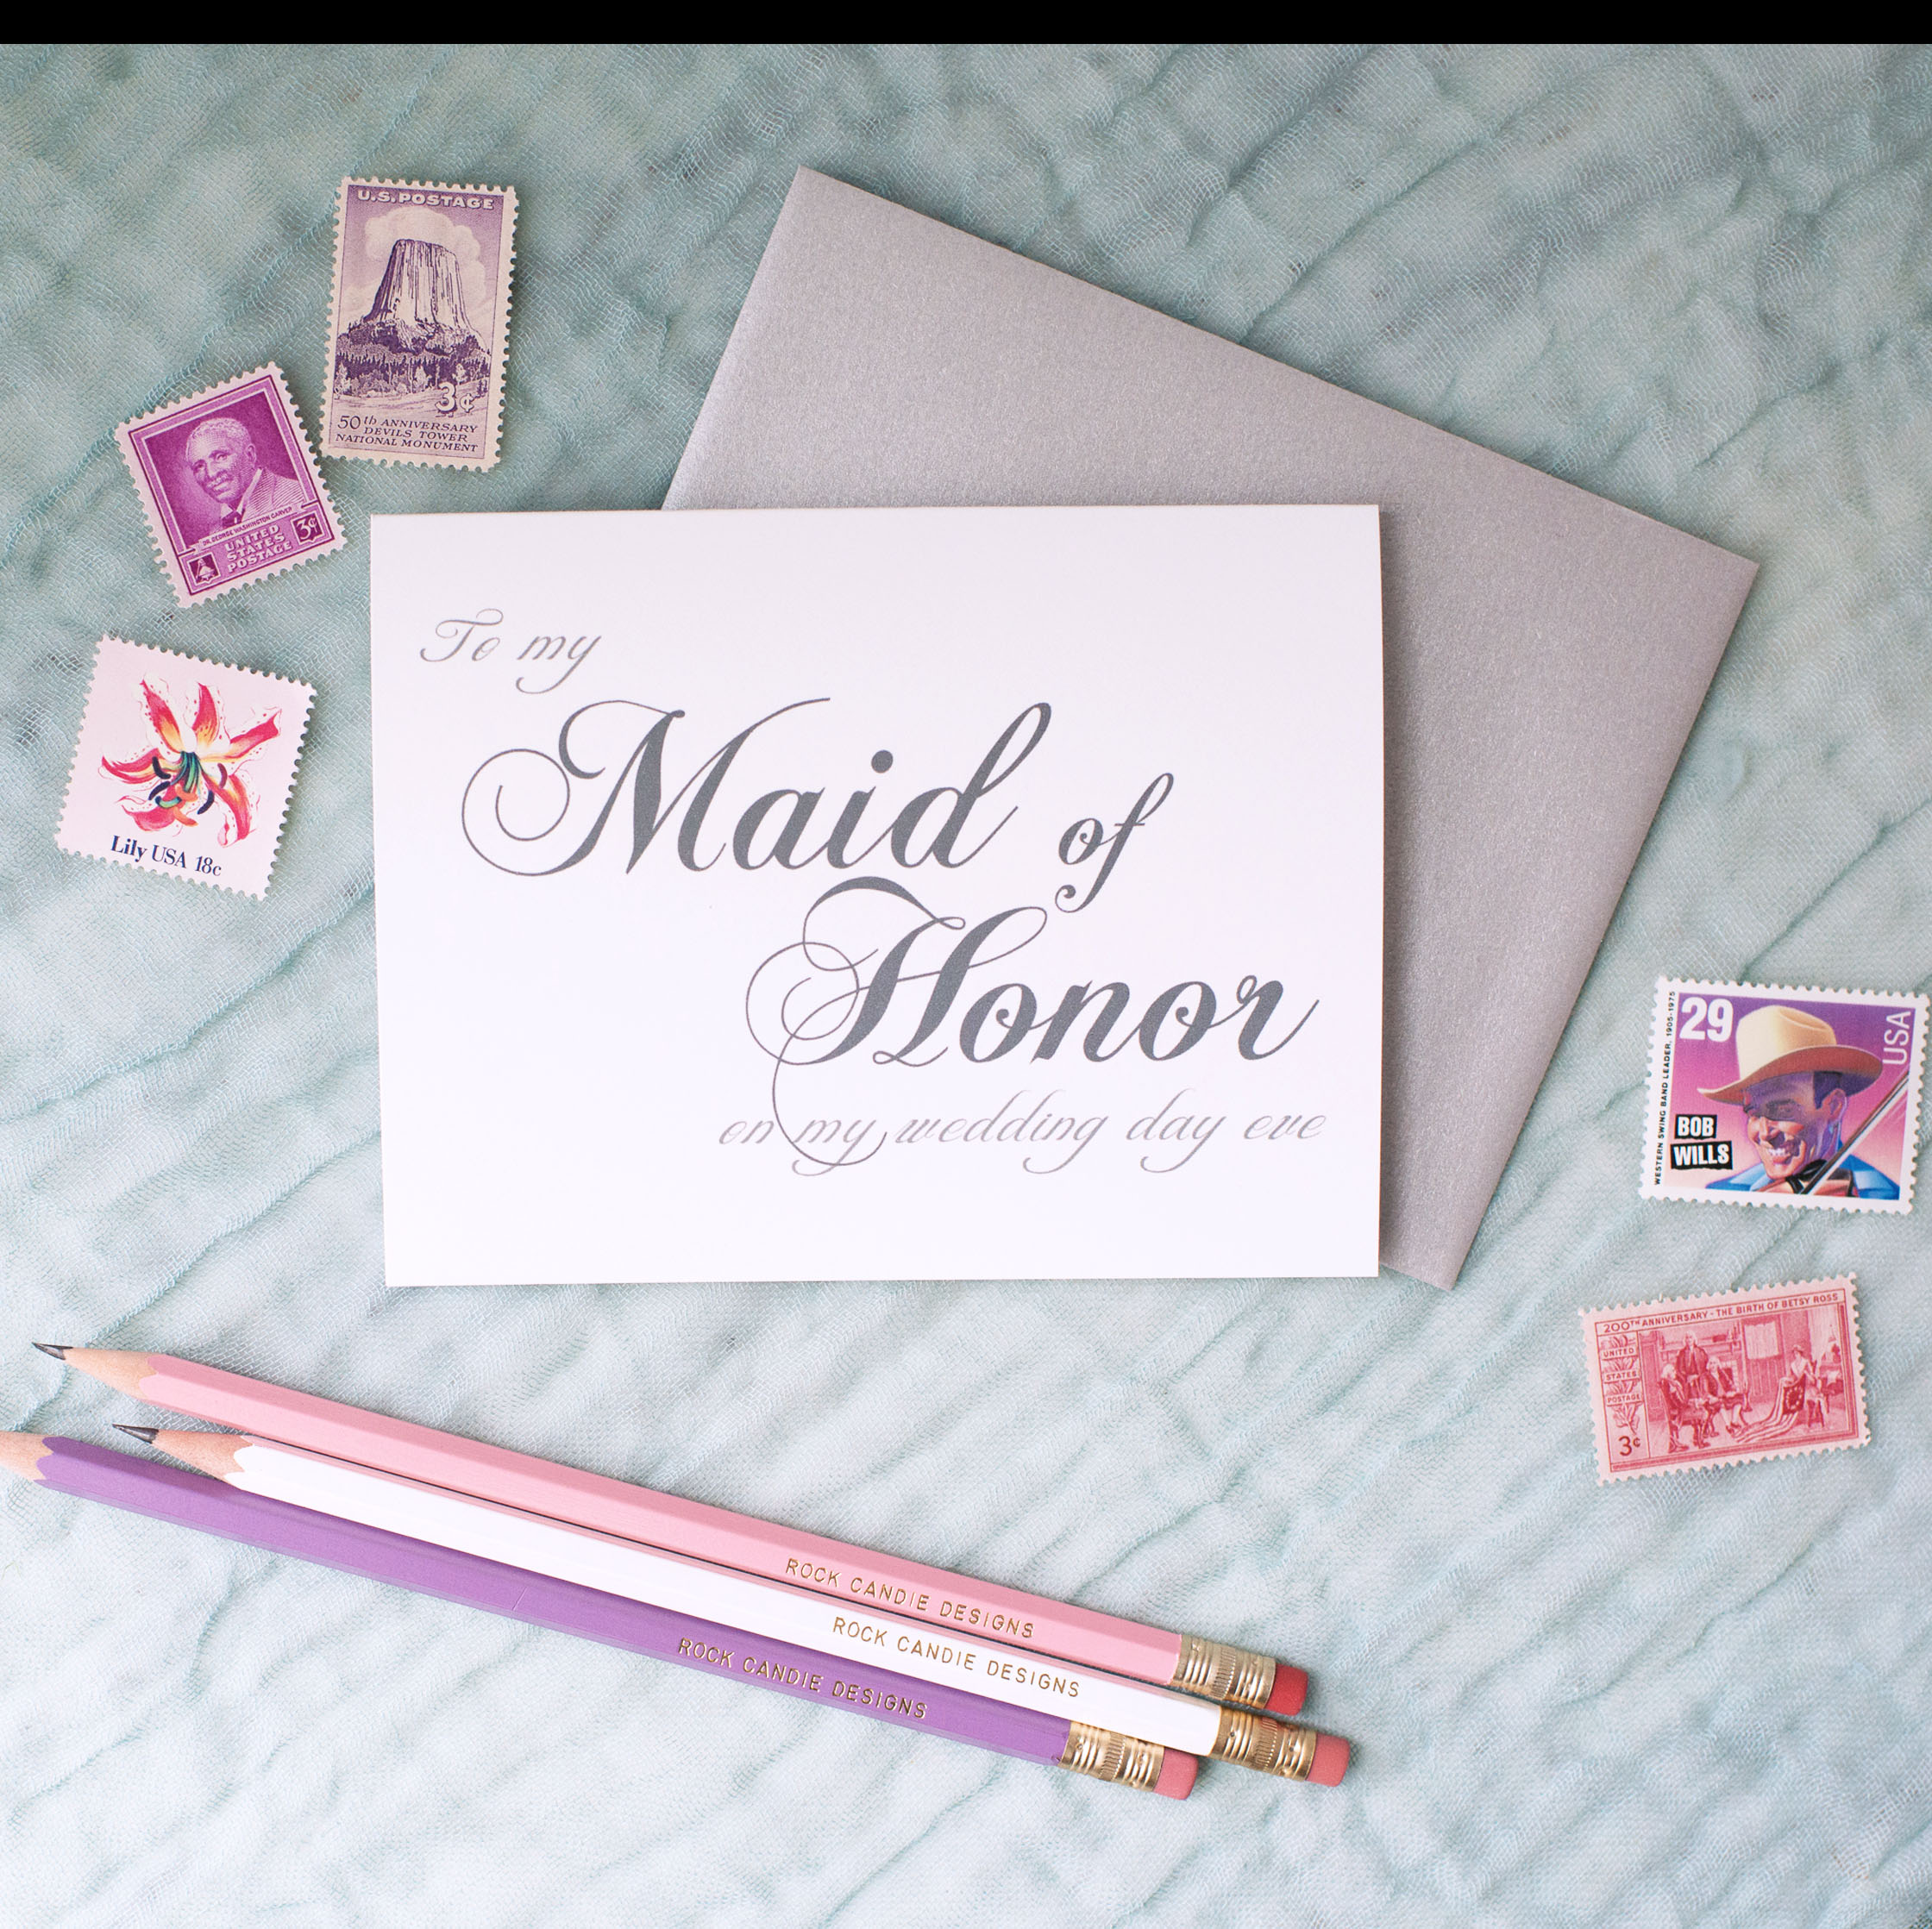 To My Maid of Honor On My Wedding Day Eve Card